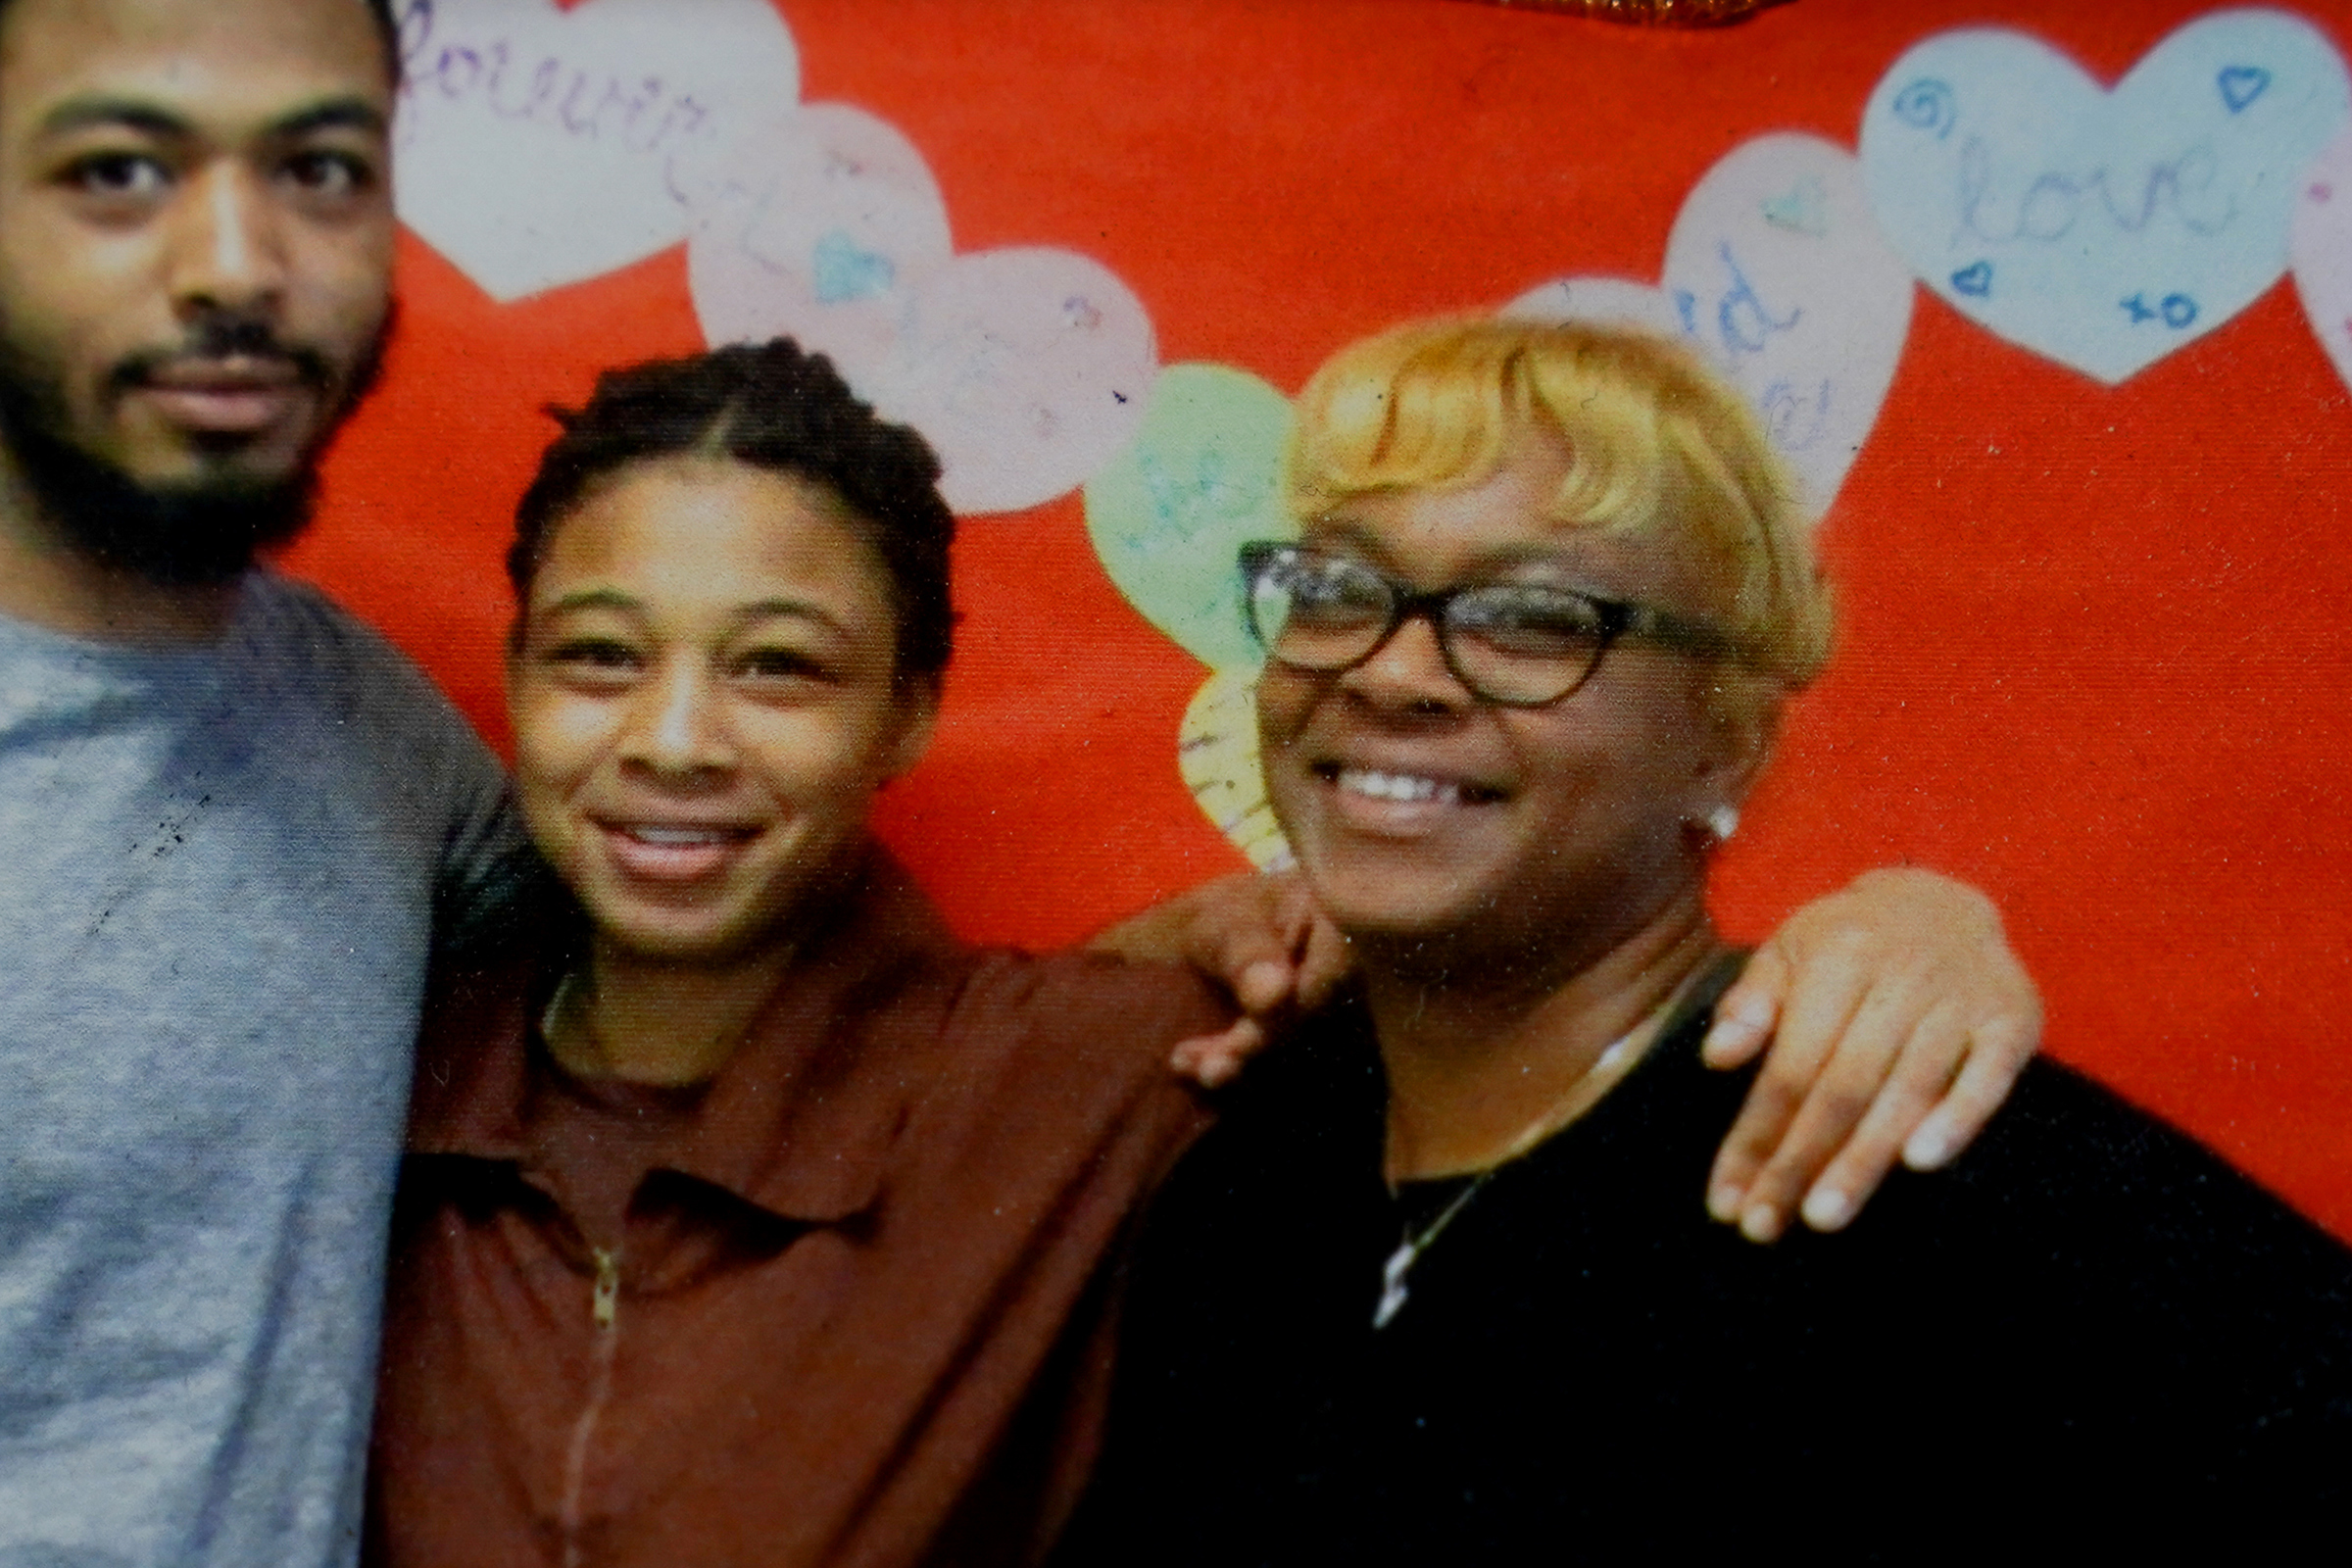 India Spellman (center) is seen in a family photograph with her younger brother, Marquise, and her mother, Morkea.